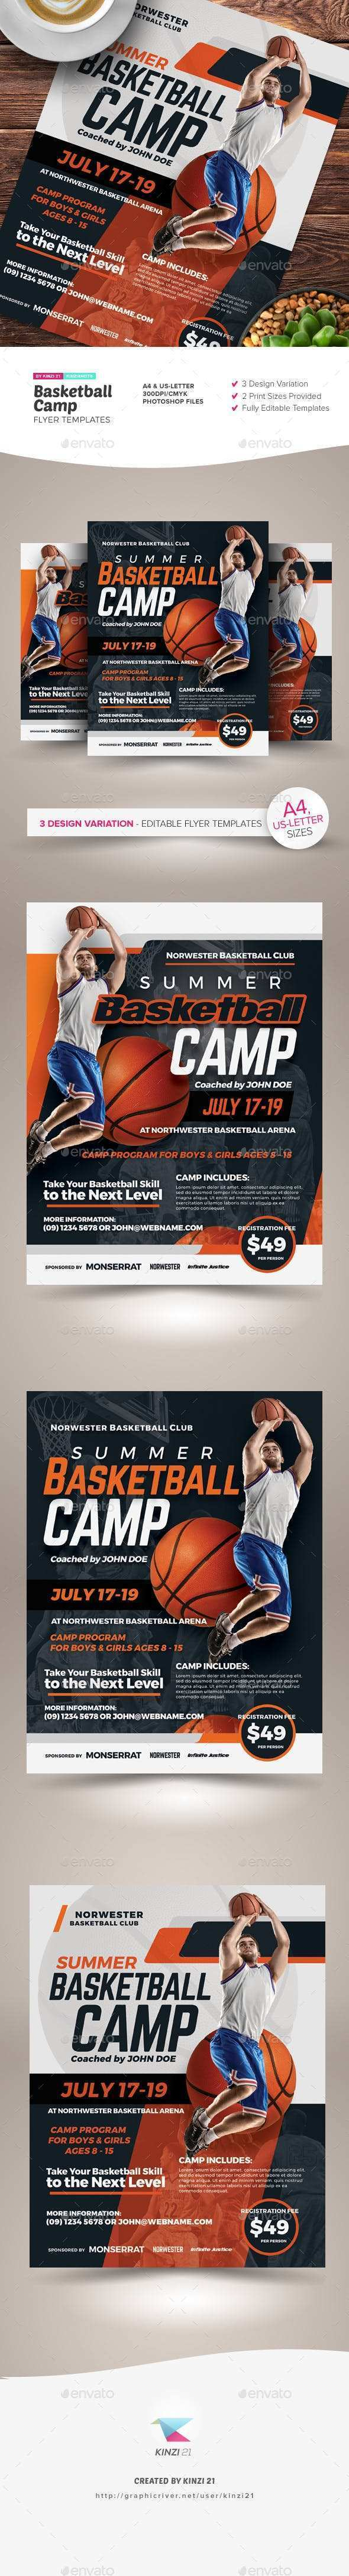 48 Best Basketball Camp Flyer Template Templates by Basketball Camp Flyer Template